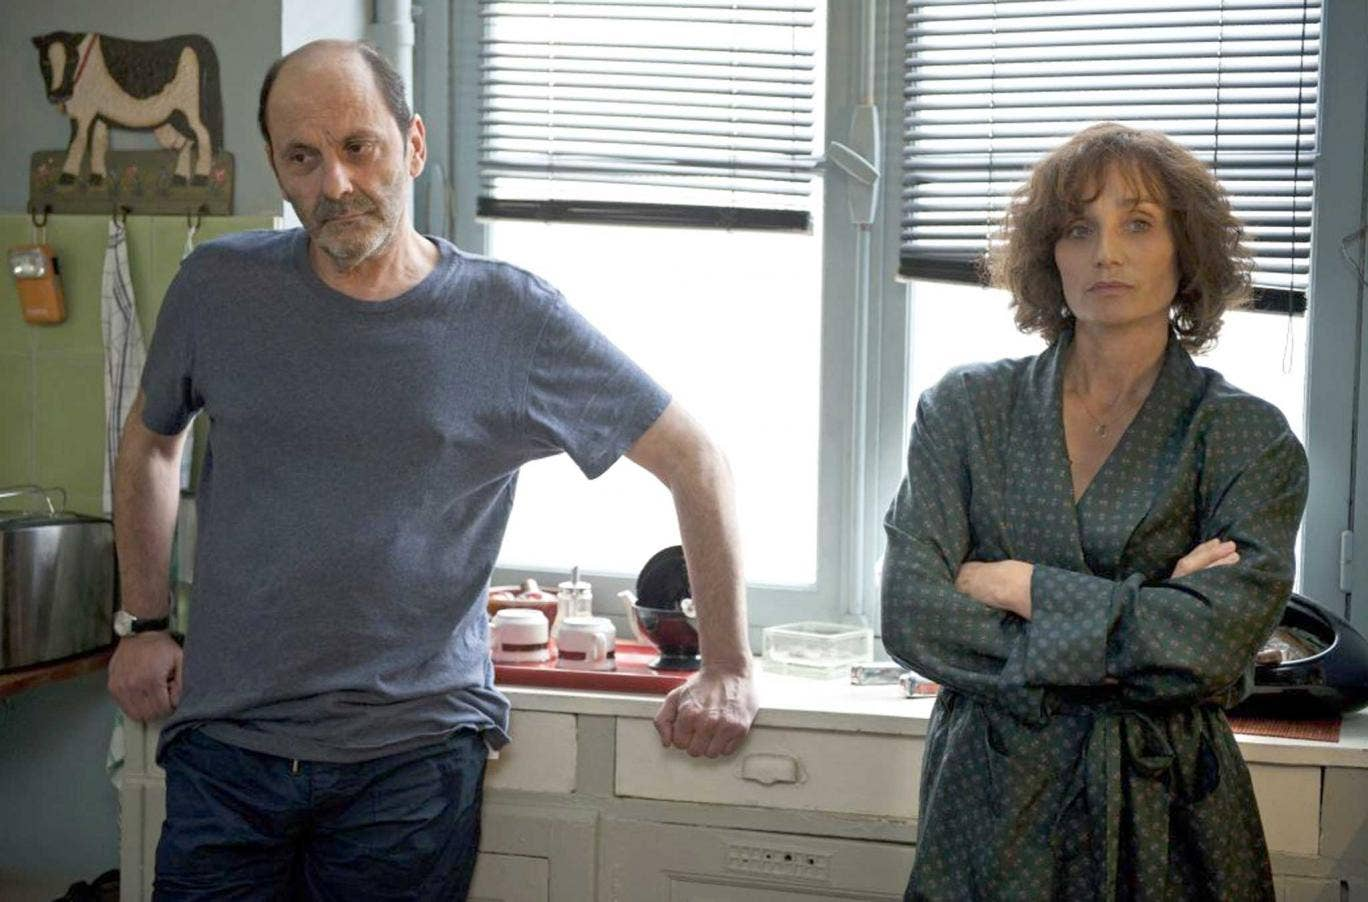 Jean-Pierre Bacri and Kristin Scott Thomas in 'Looking for Hortense'